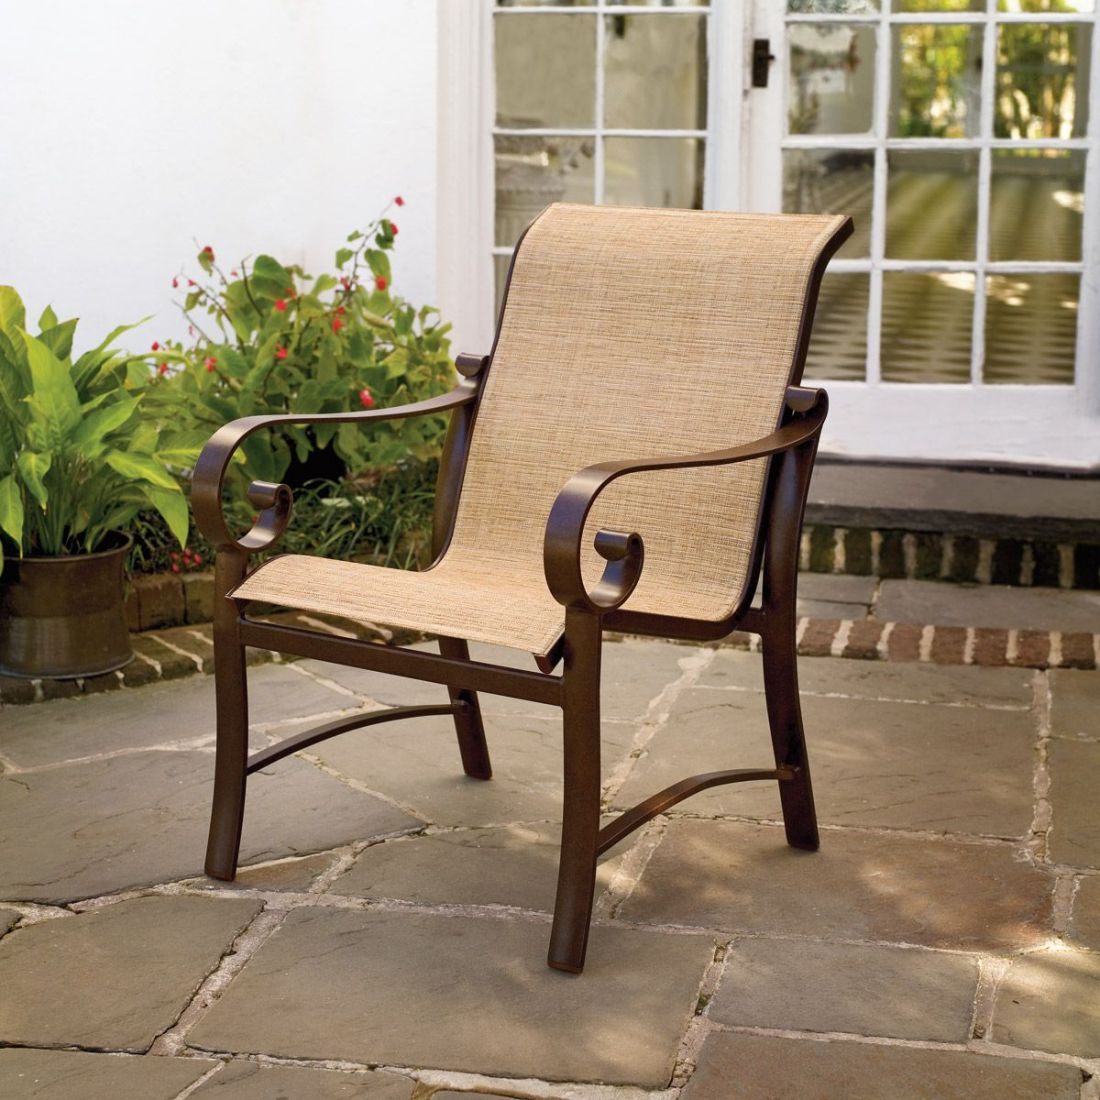 How to paint outdoor sling chairs i upcycle patios and